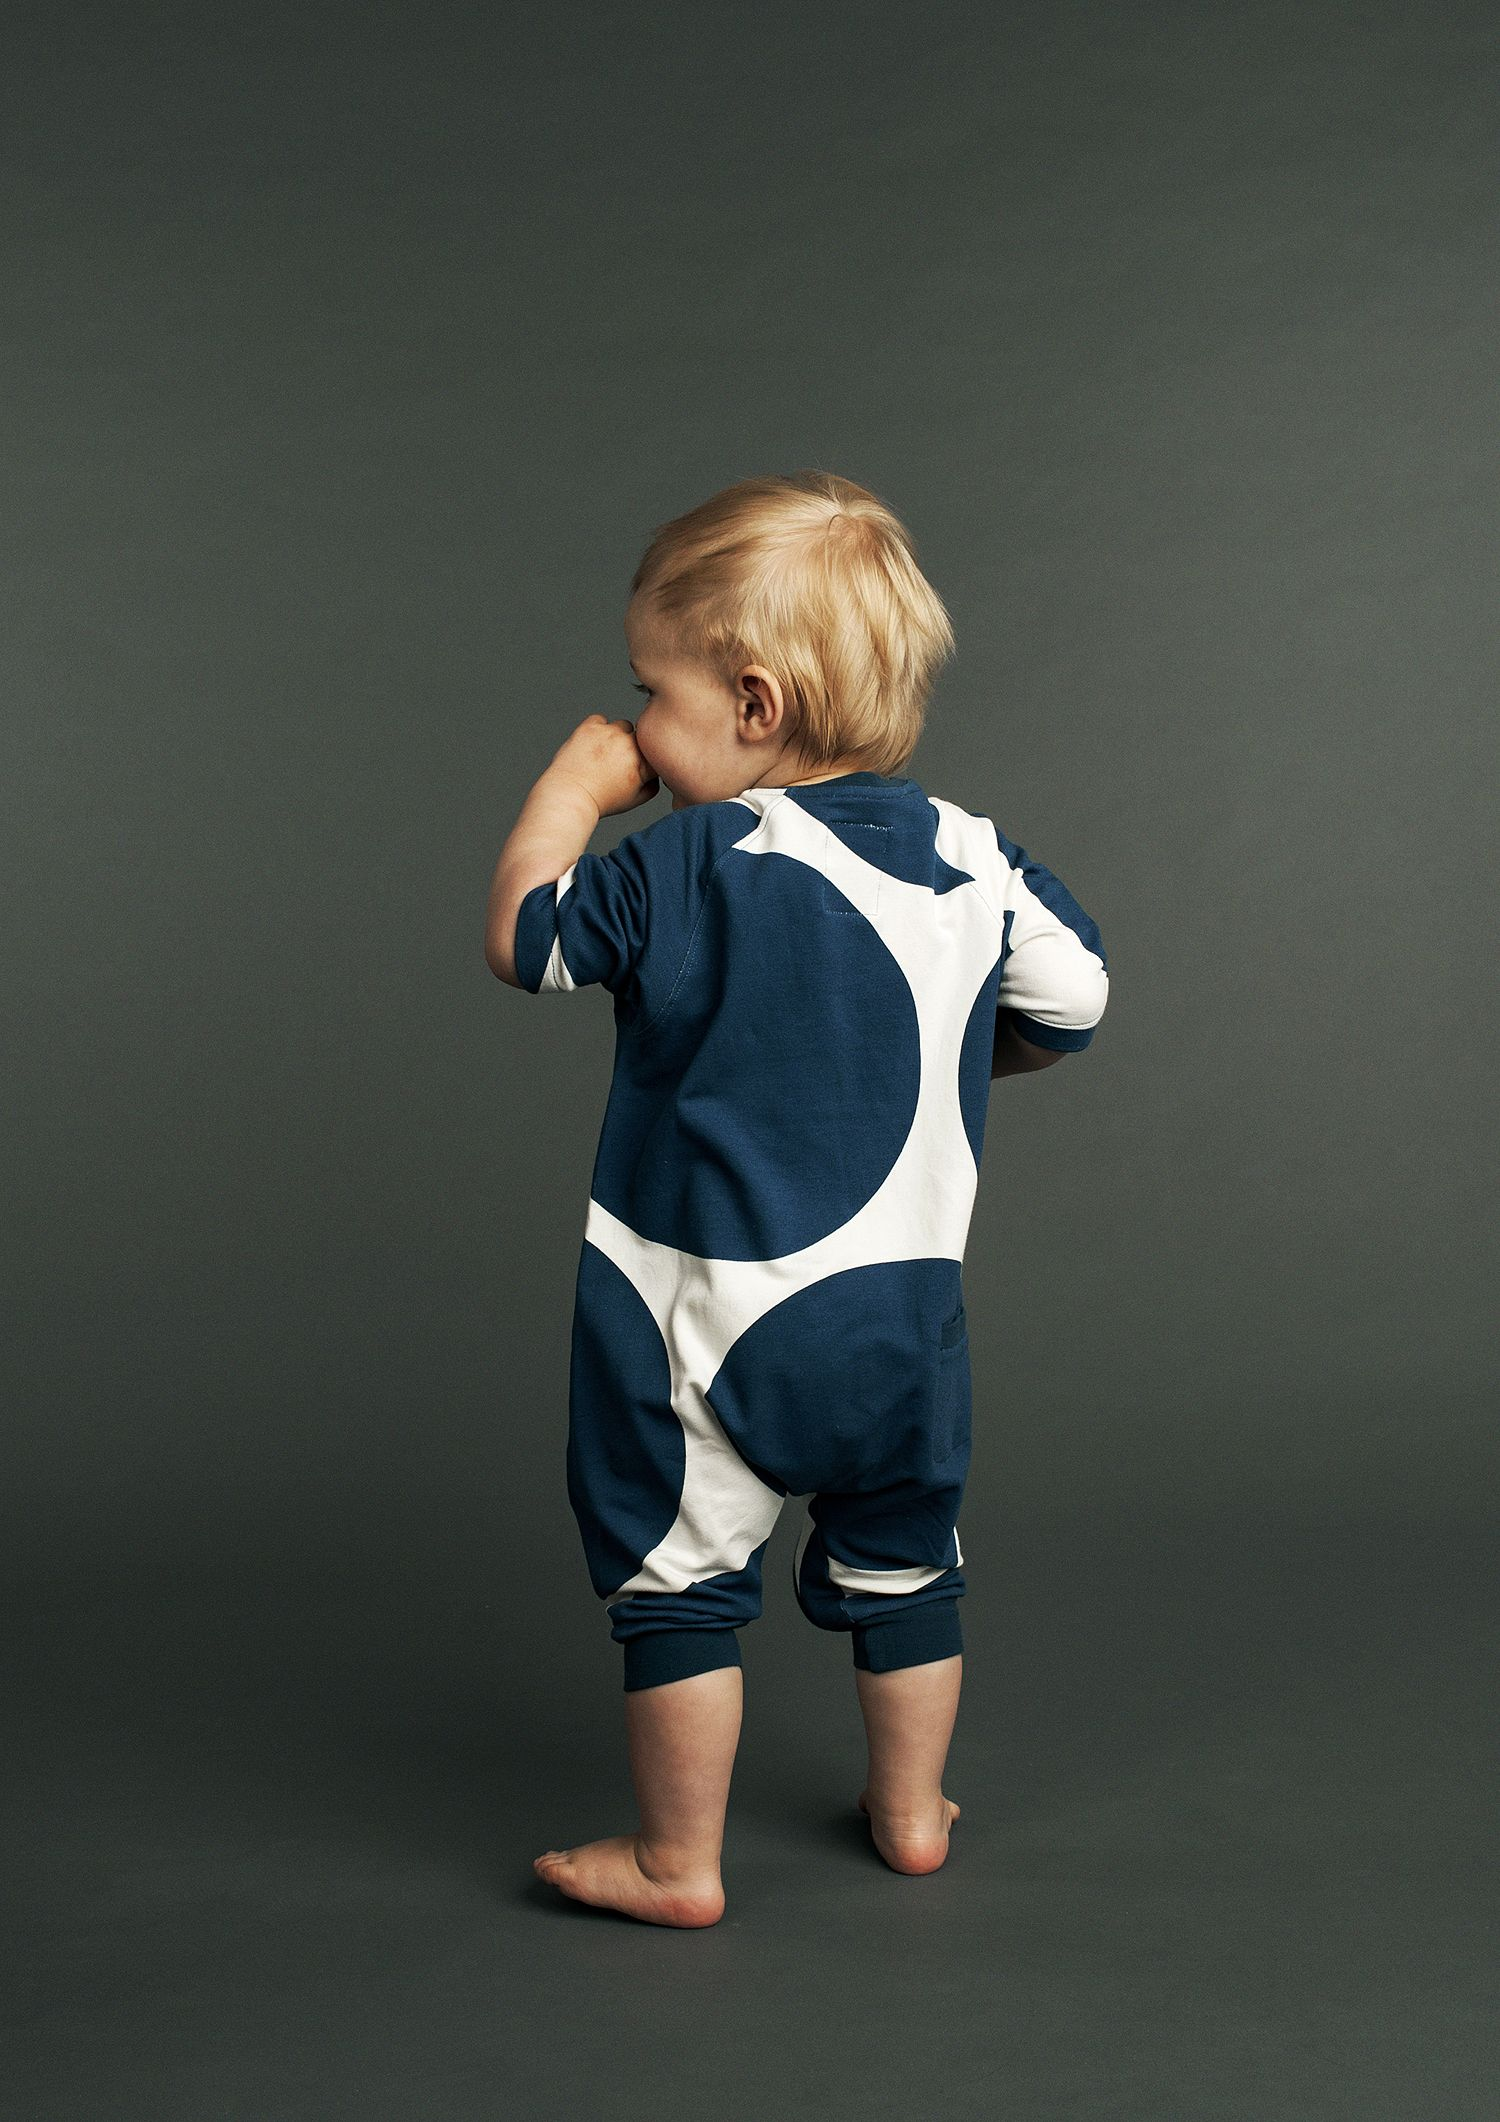 Kidscase Spring/Summer 17 collection Available on Smallable : http://en.smallable.com/kidscase Boys. Girls. Toddlers. Childrenswear. Fashion. Summer. Outfits. Clothes. Smallable